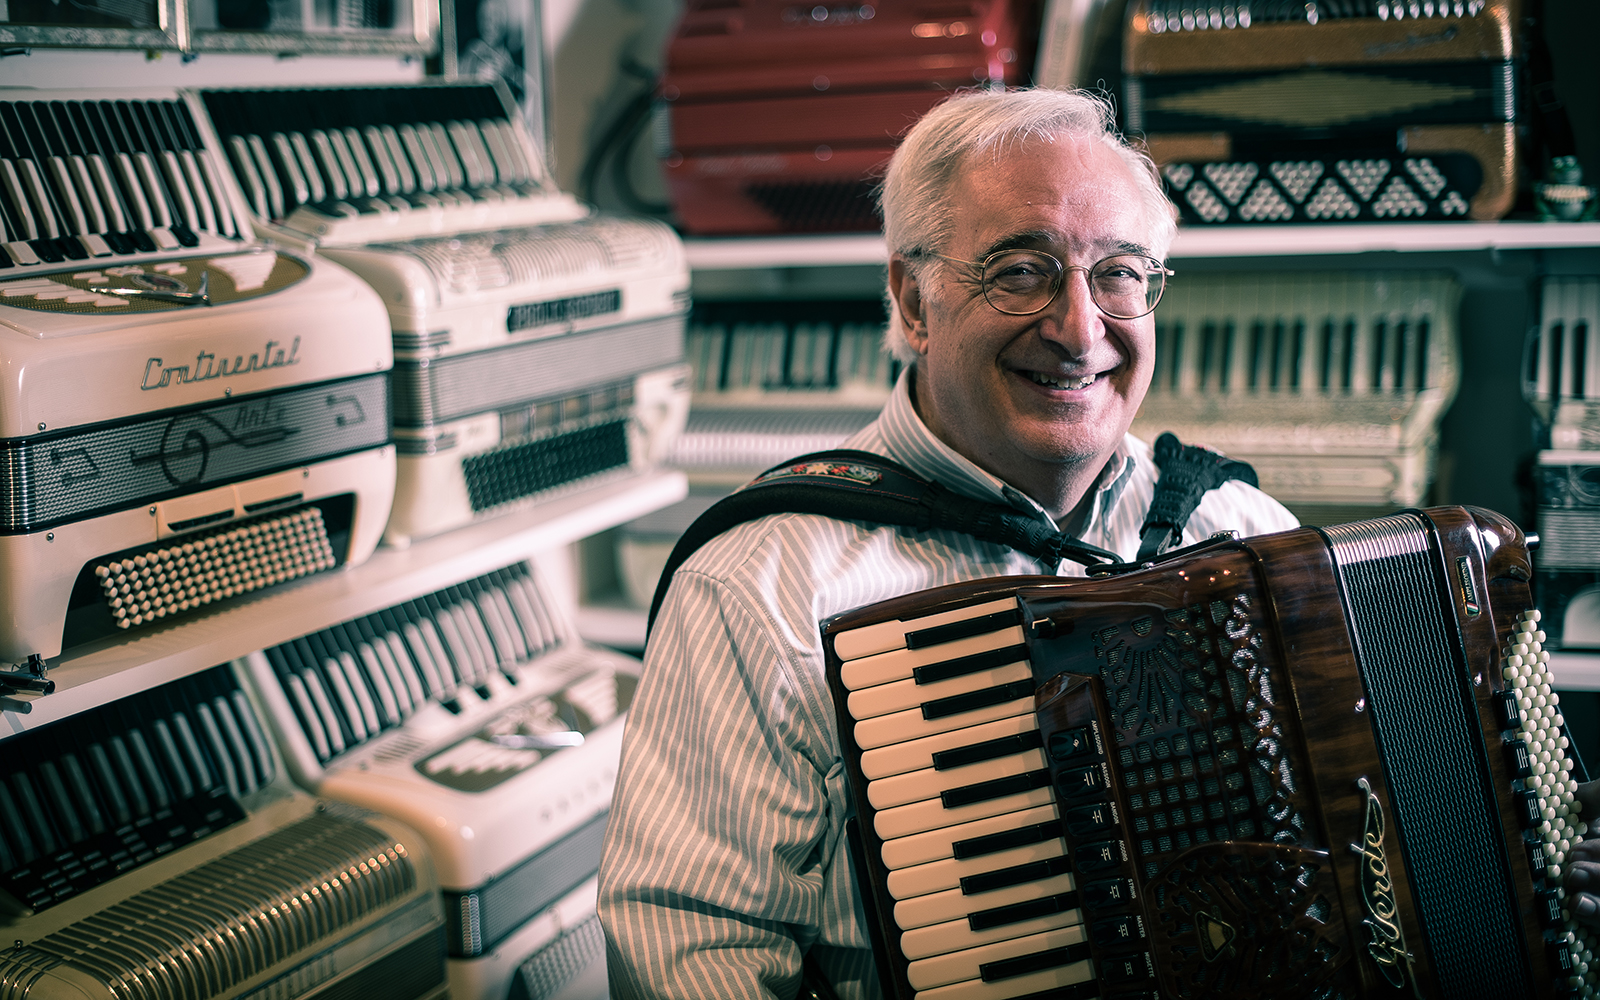 Professor Ramunni's 'Accordion Fever'